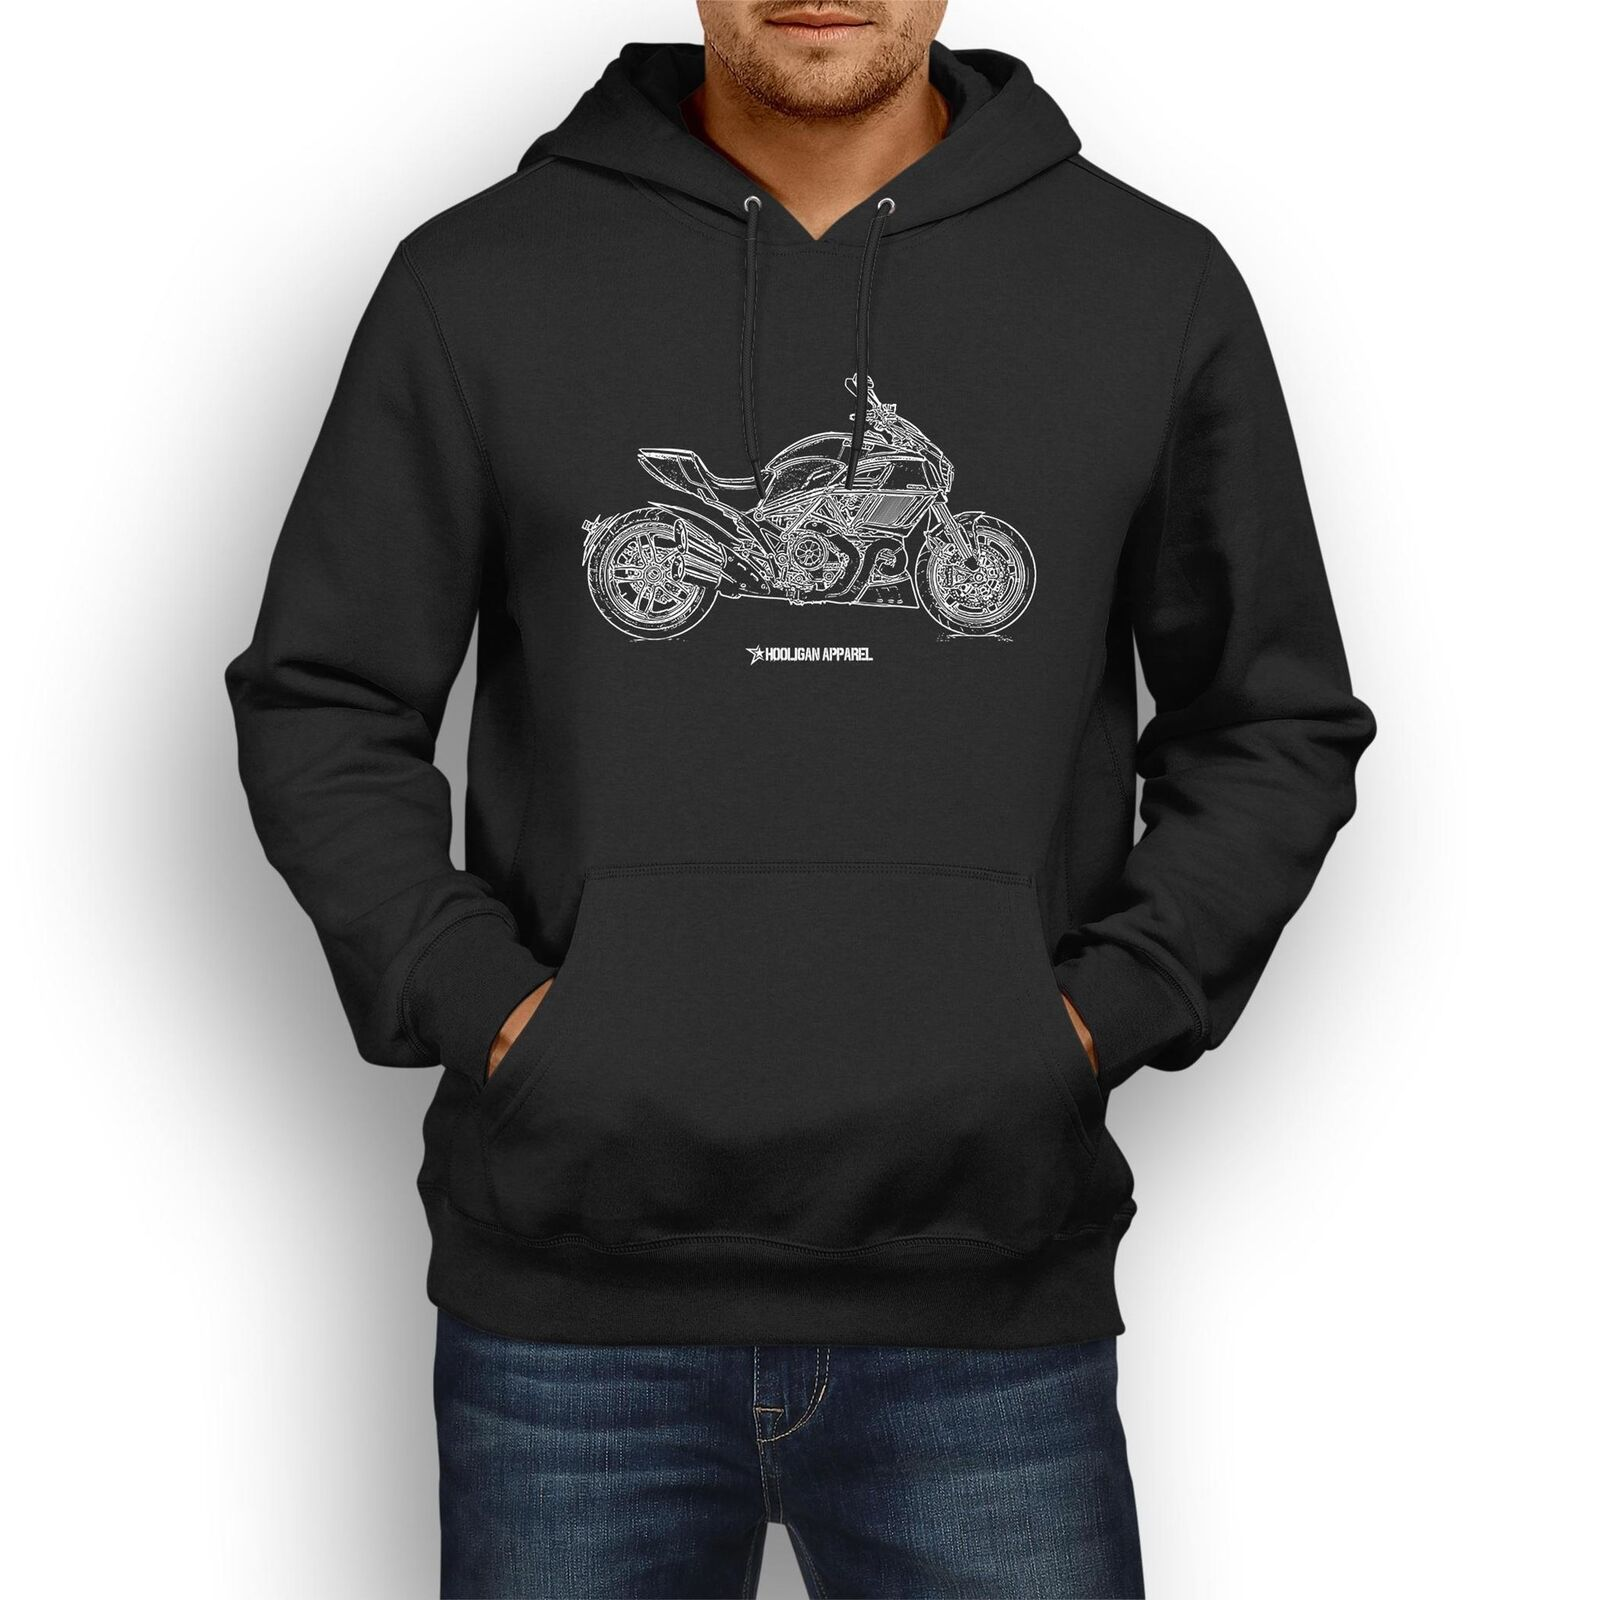 Ducati Diavel Carbon 2017 InspiROT Motorcycle Art Men's Hoodie